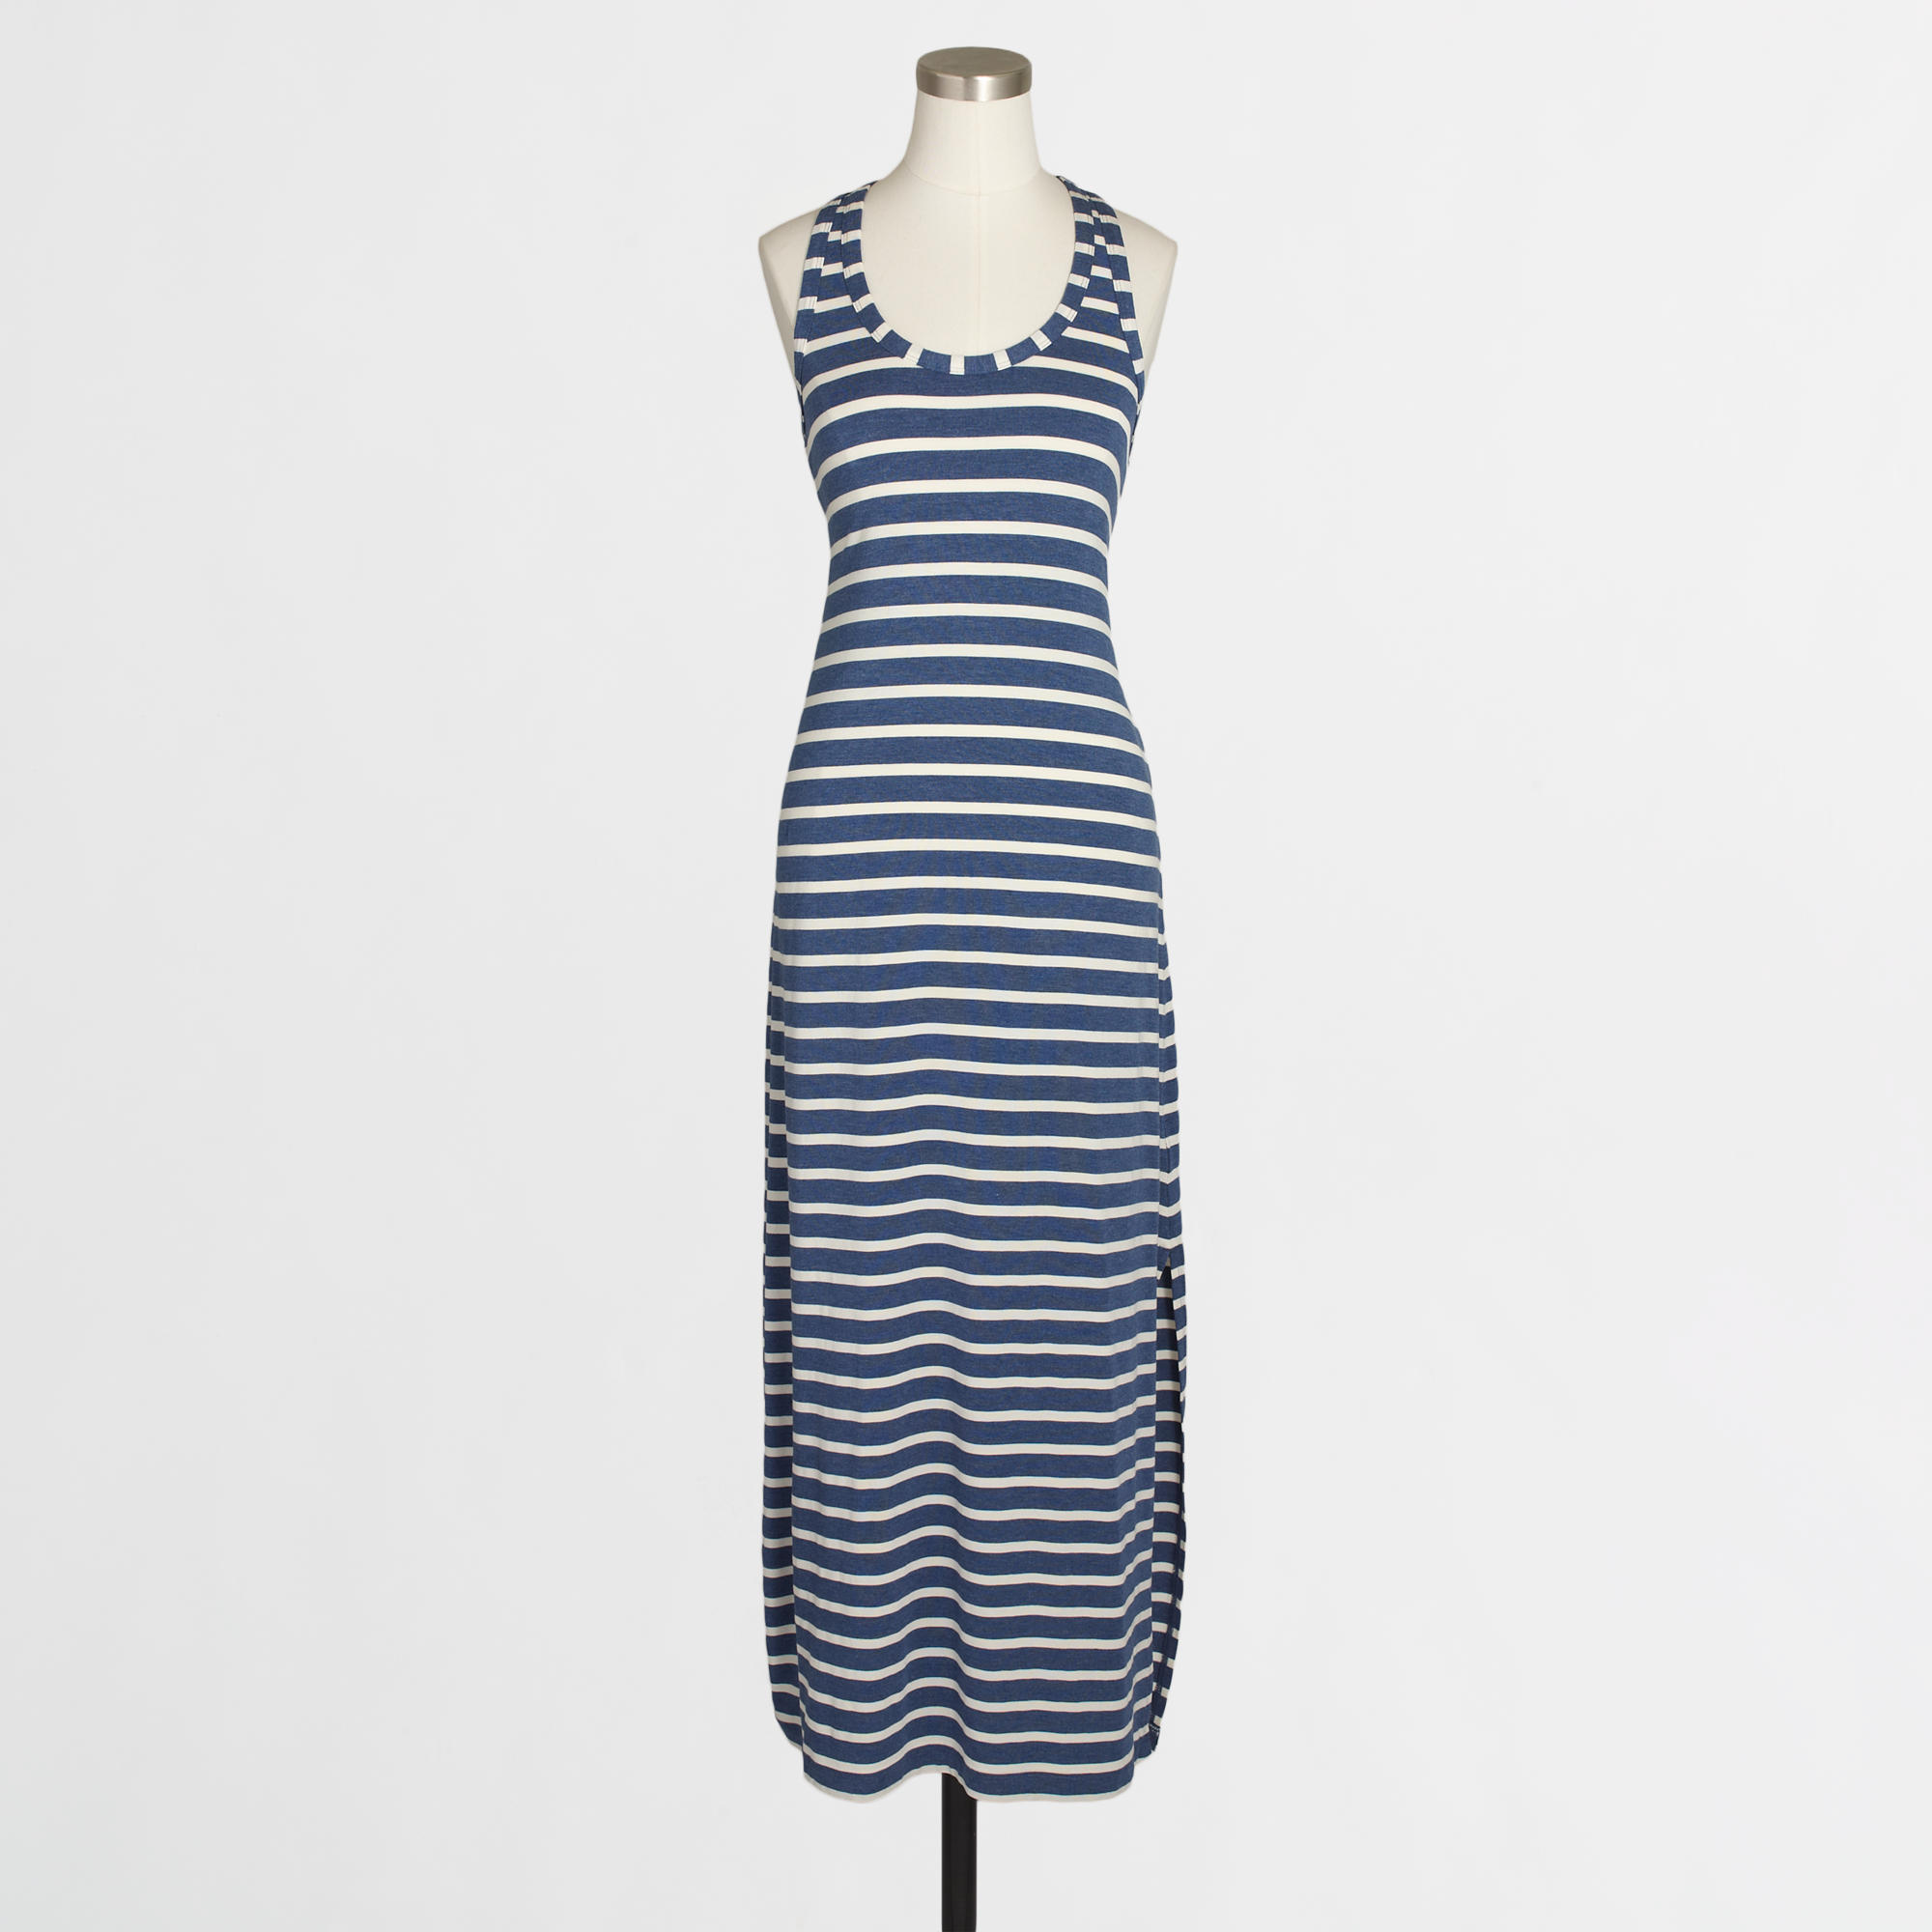 9a2e8e6b849 J.Crew Factory Knit Raceback Maxi Dress in Stripe - Dealmoon